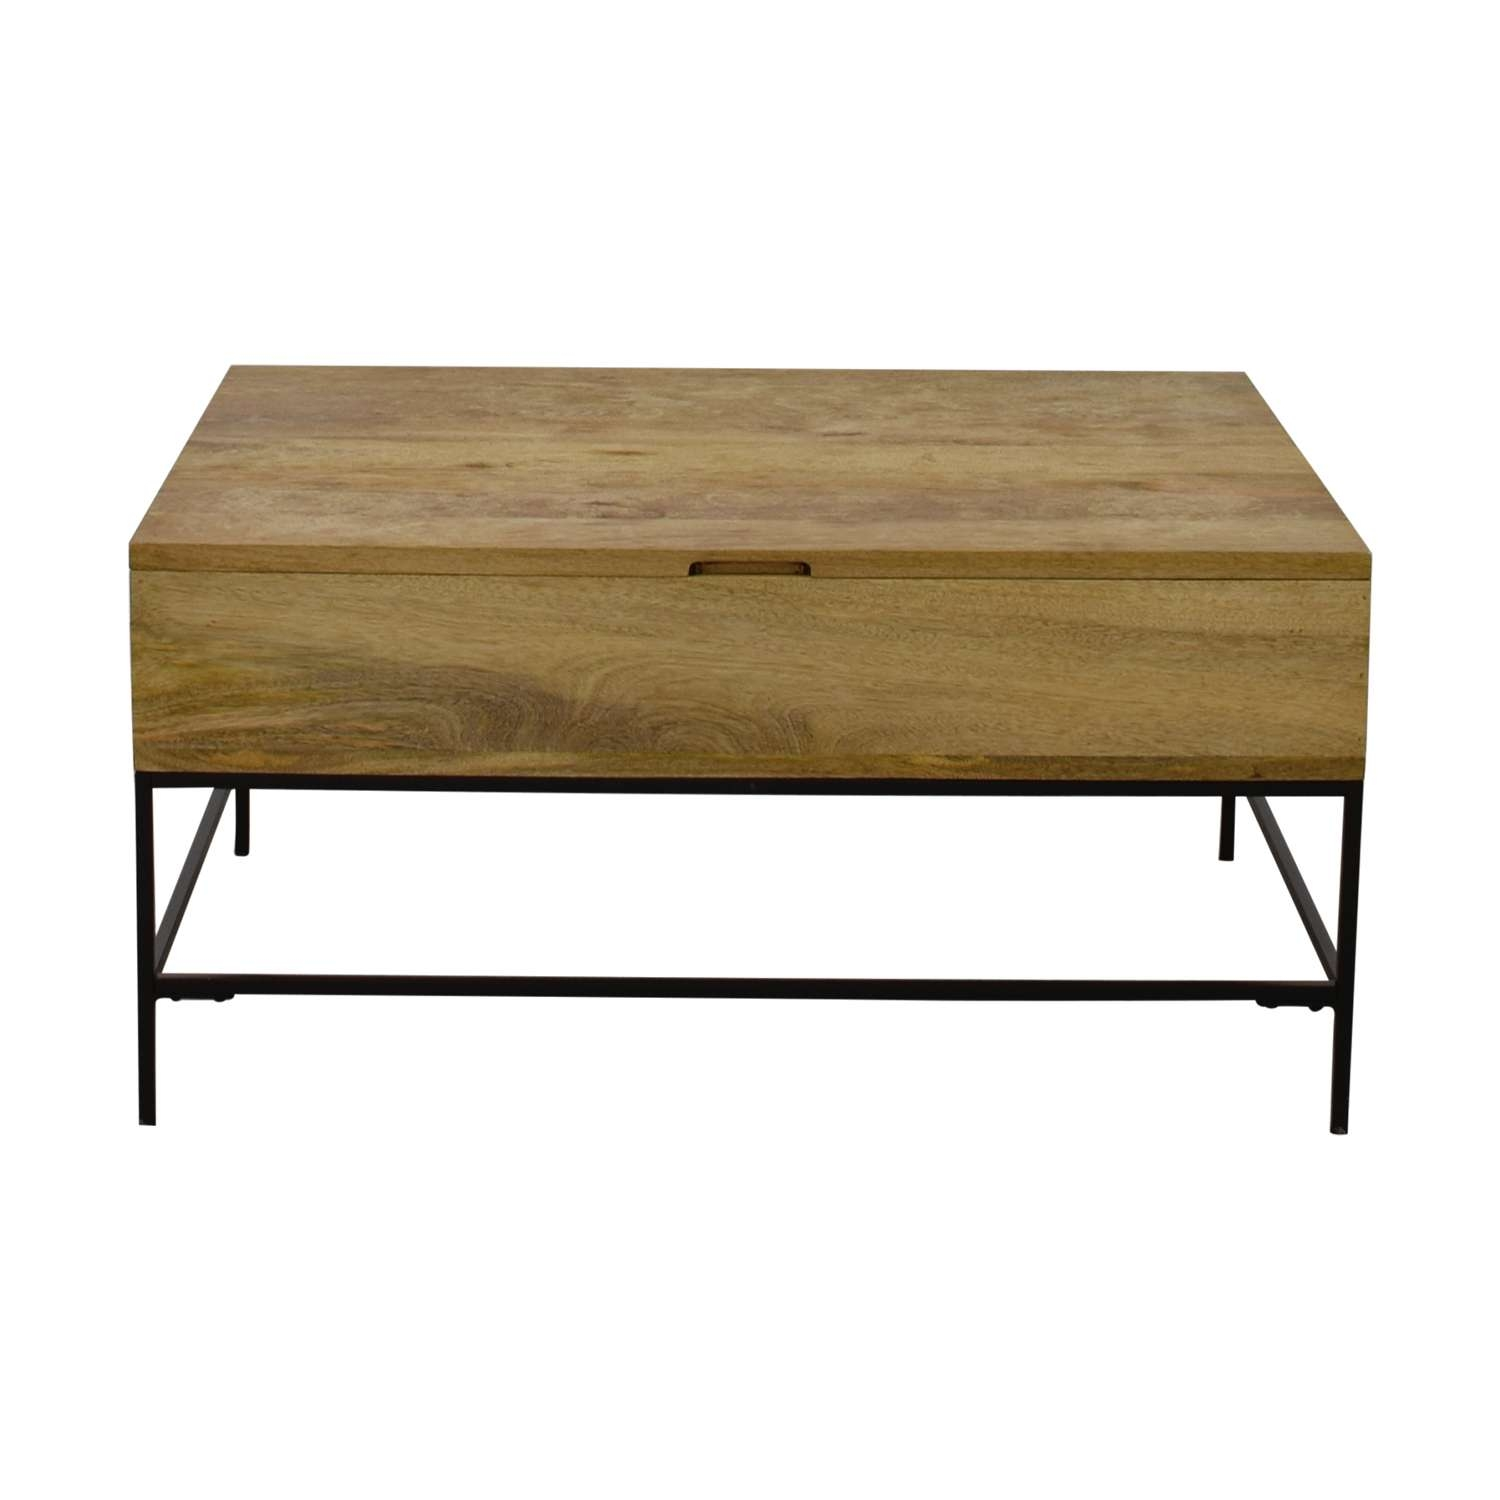 [%Well Known Rustic Wooden Coffee Tables Intended For 47% Off – West Elm West Elm Rustic Wood Coffee Table / Tables|47% Off – West Elm West Elm Rustic Wood Coffee Table / Tables With Best And Newest Rustic Wooden Coffee Tables%] (View 1 of 20)